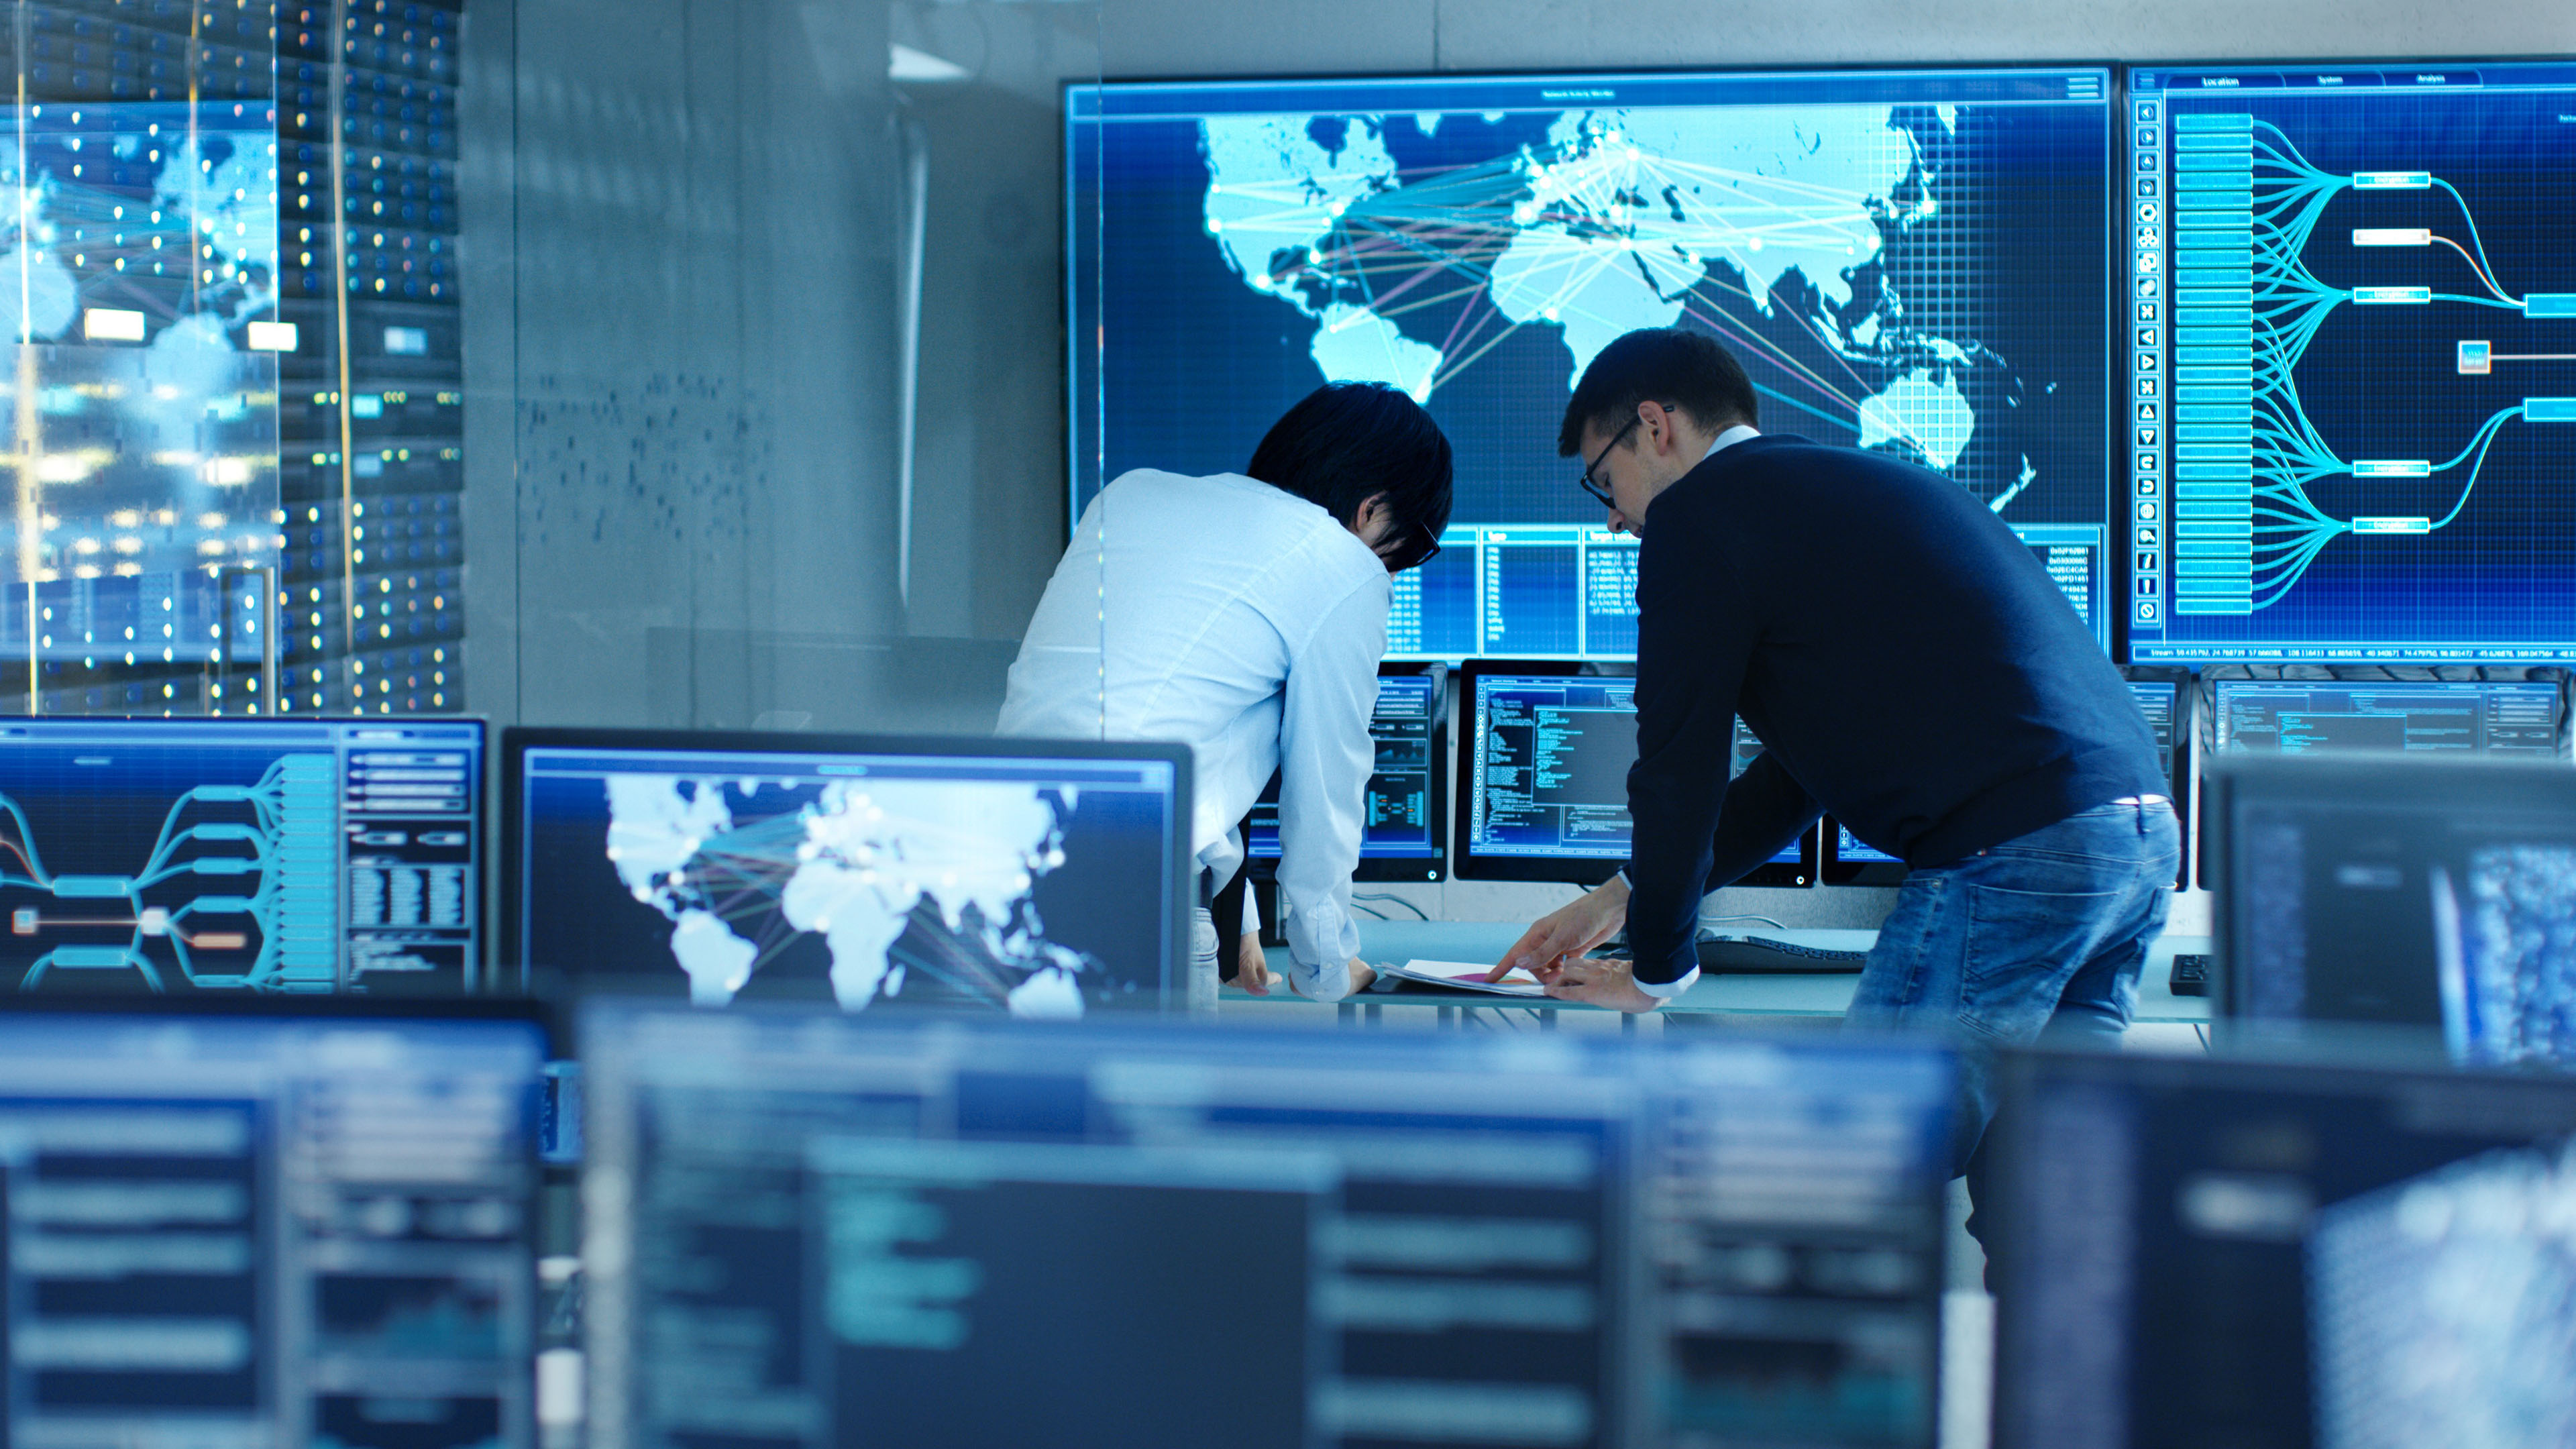 Colleagues working together in server control  image